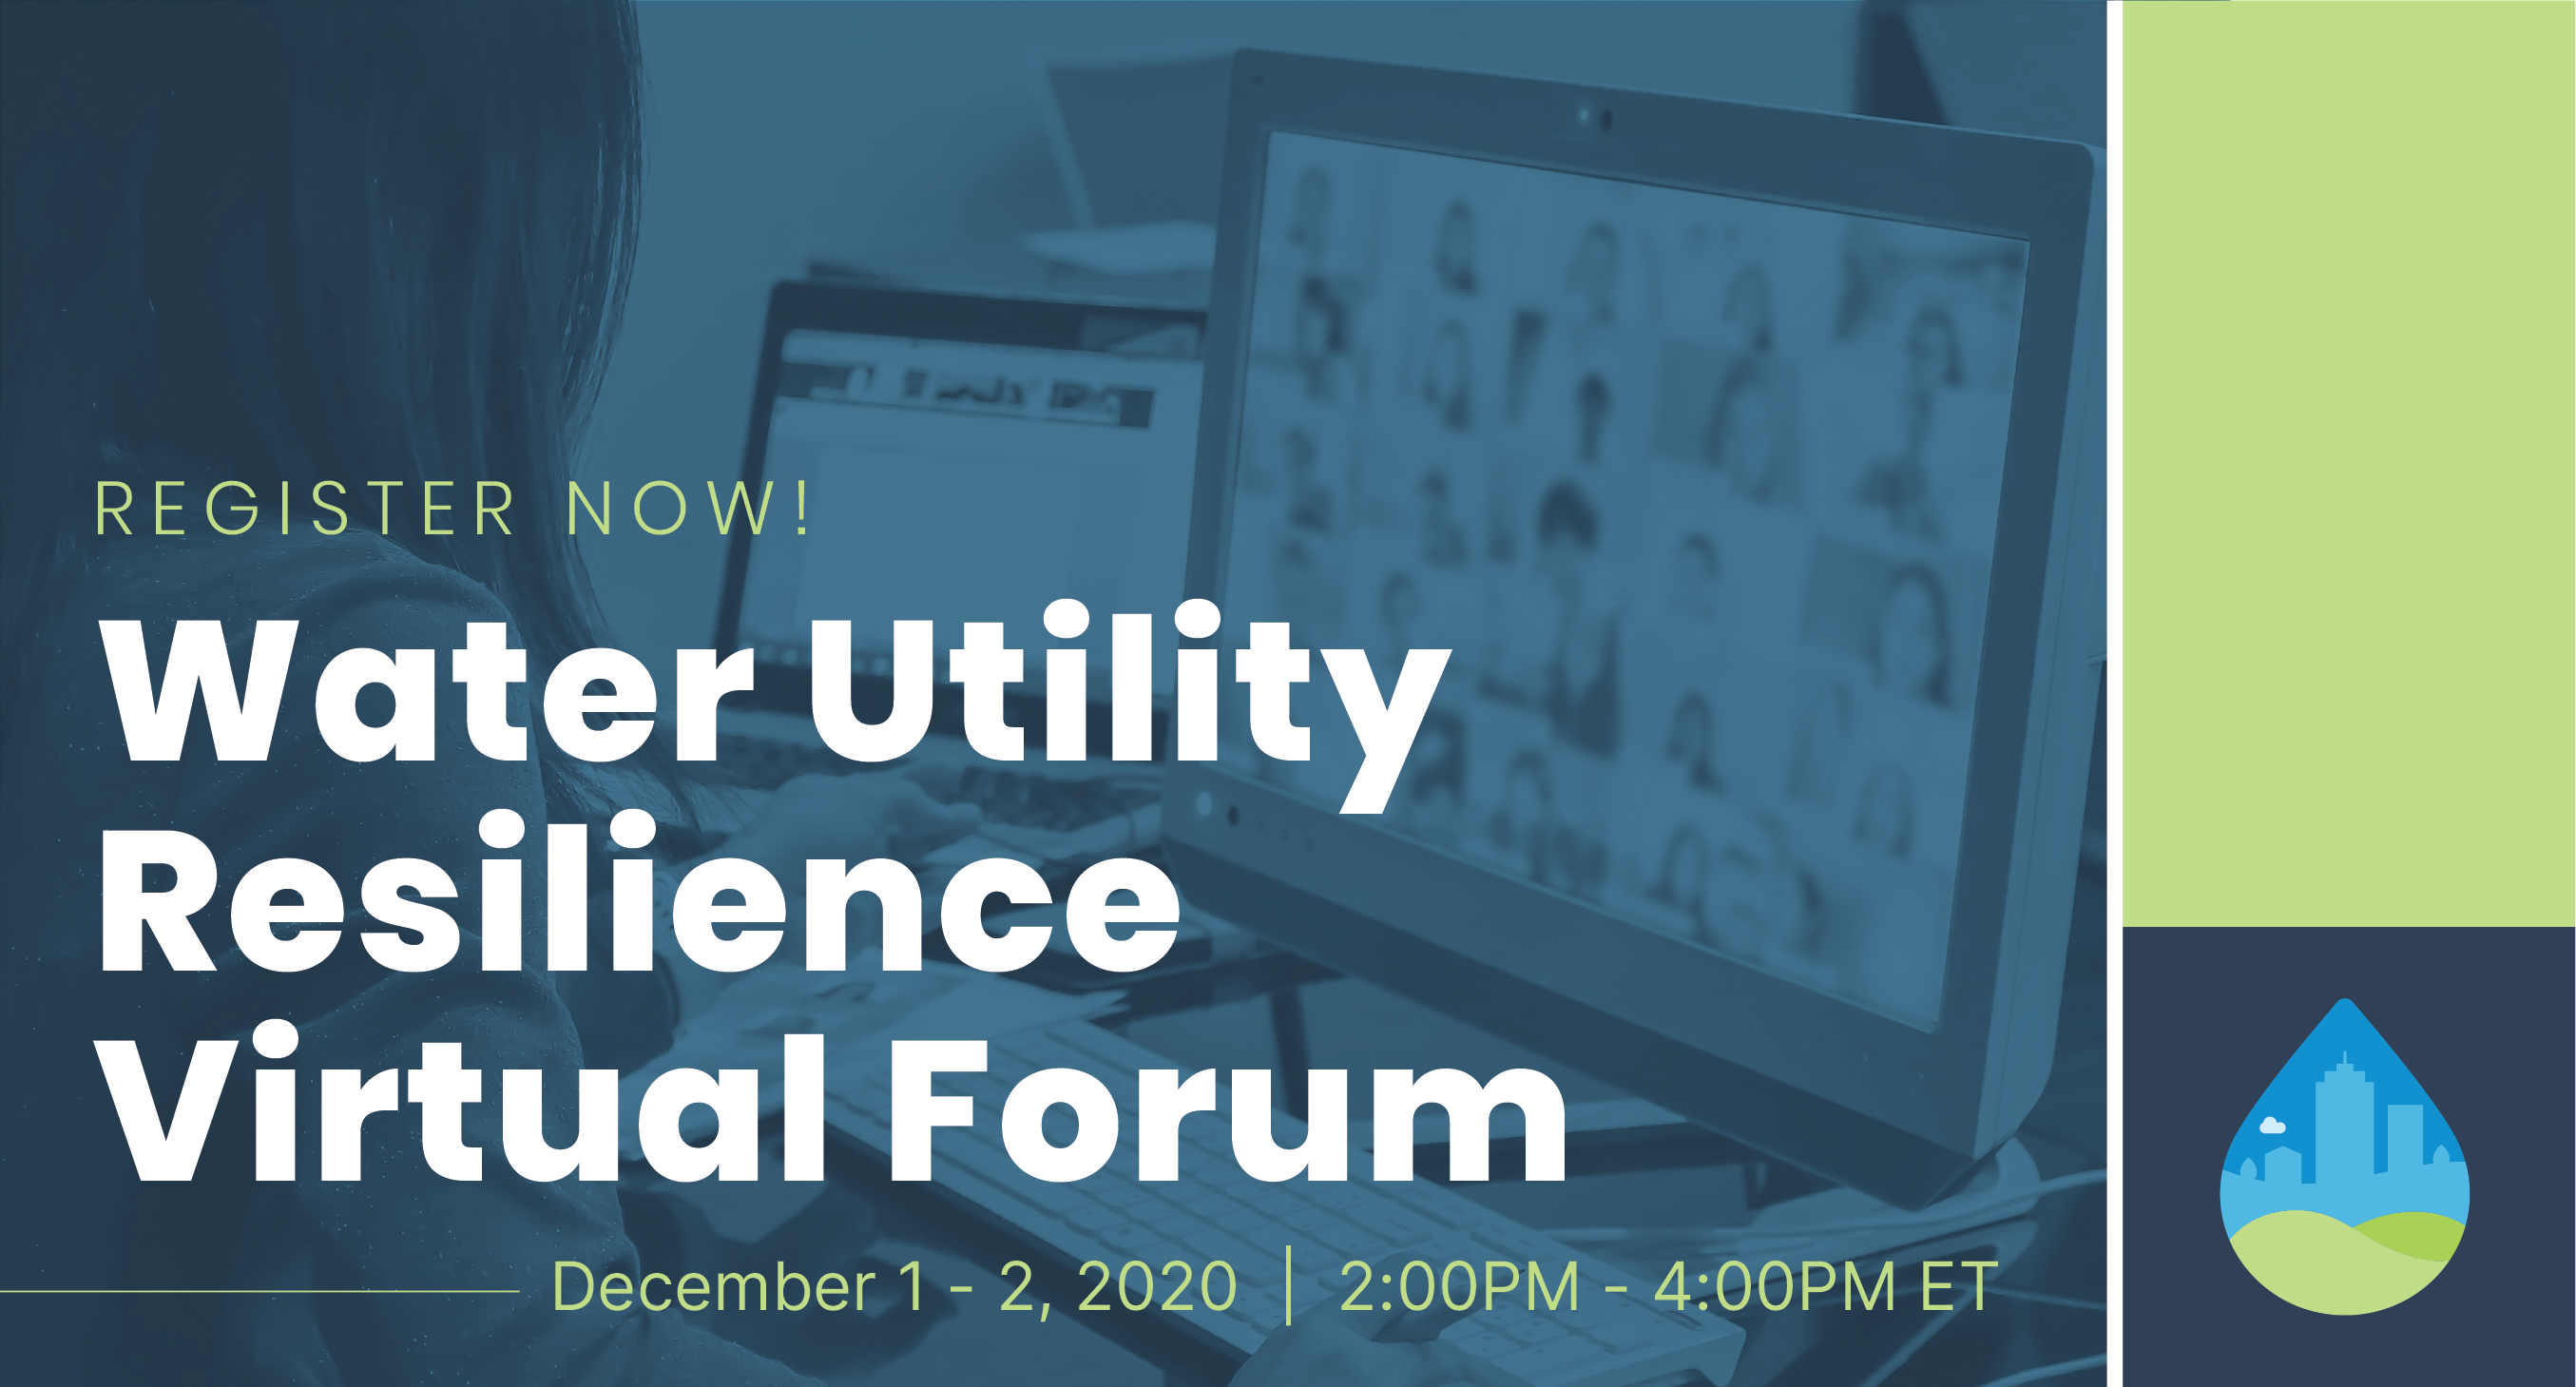 Water Utility Resilience Virtual Forum